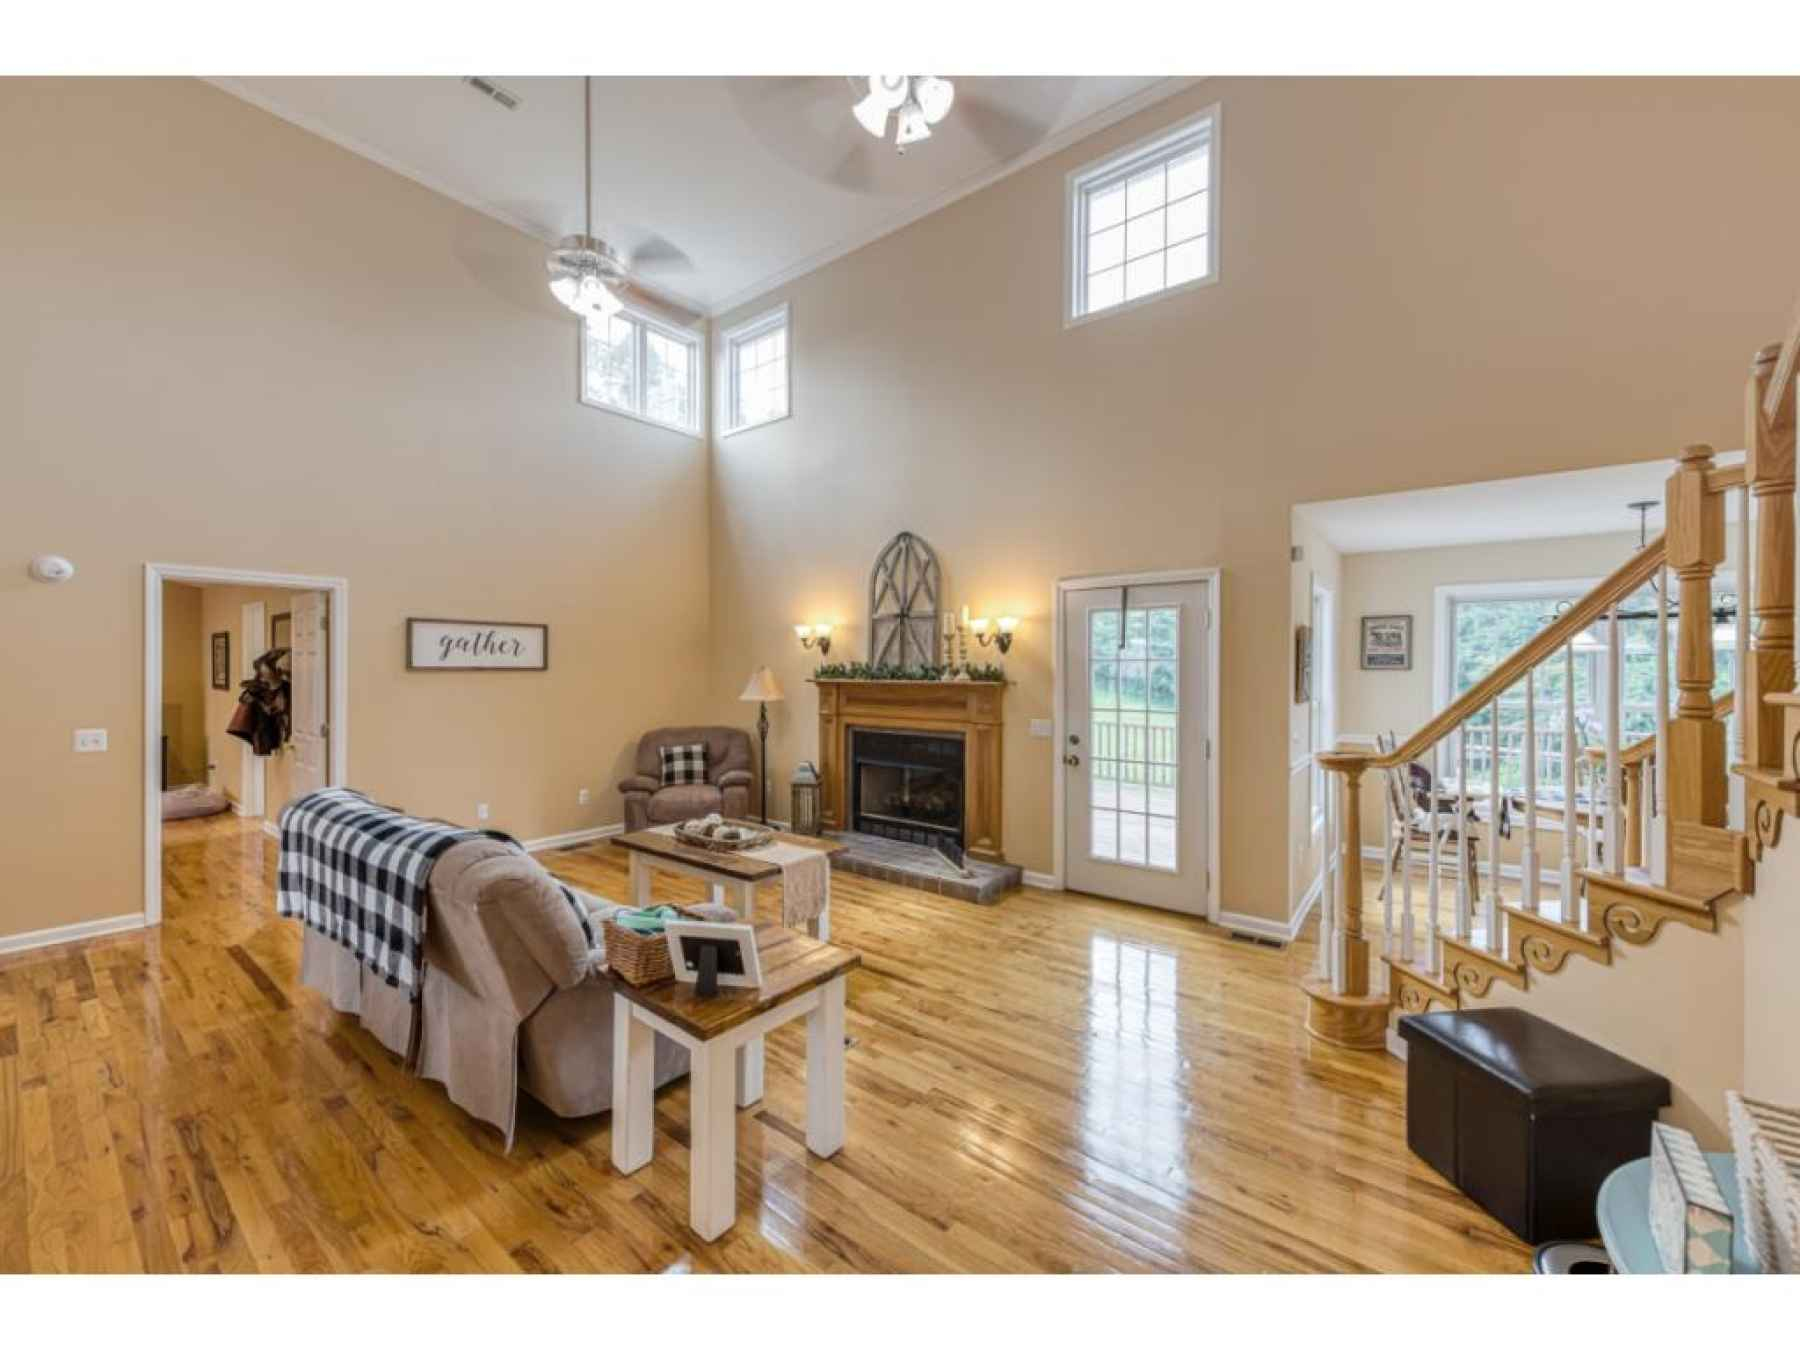 155 Riverside Dr Bristol, VIRGINIA 24202 – Bob Quillen Real